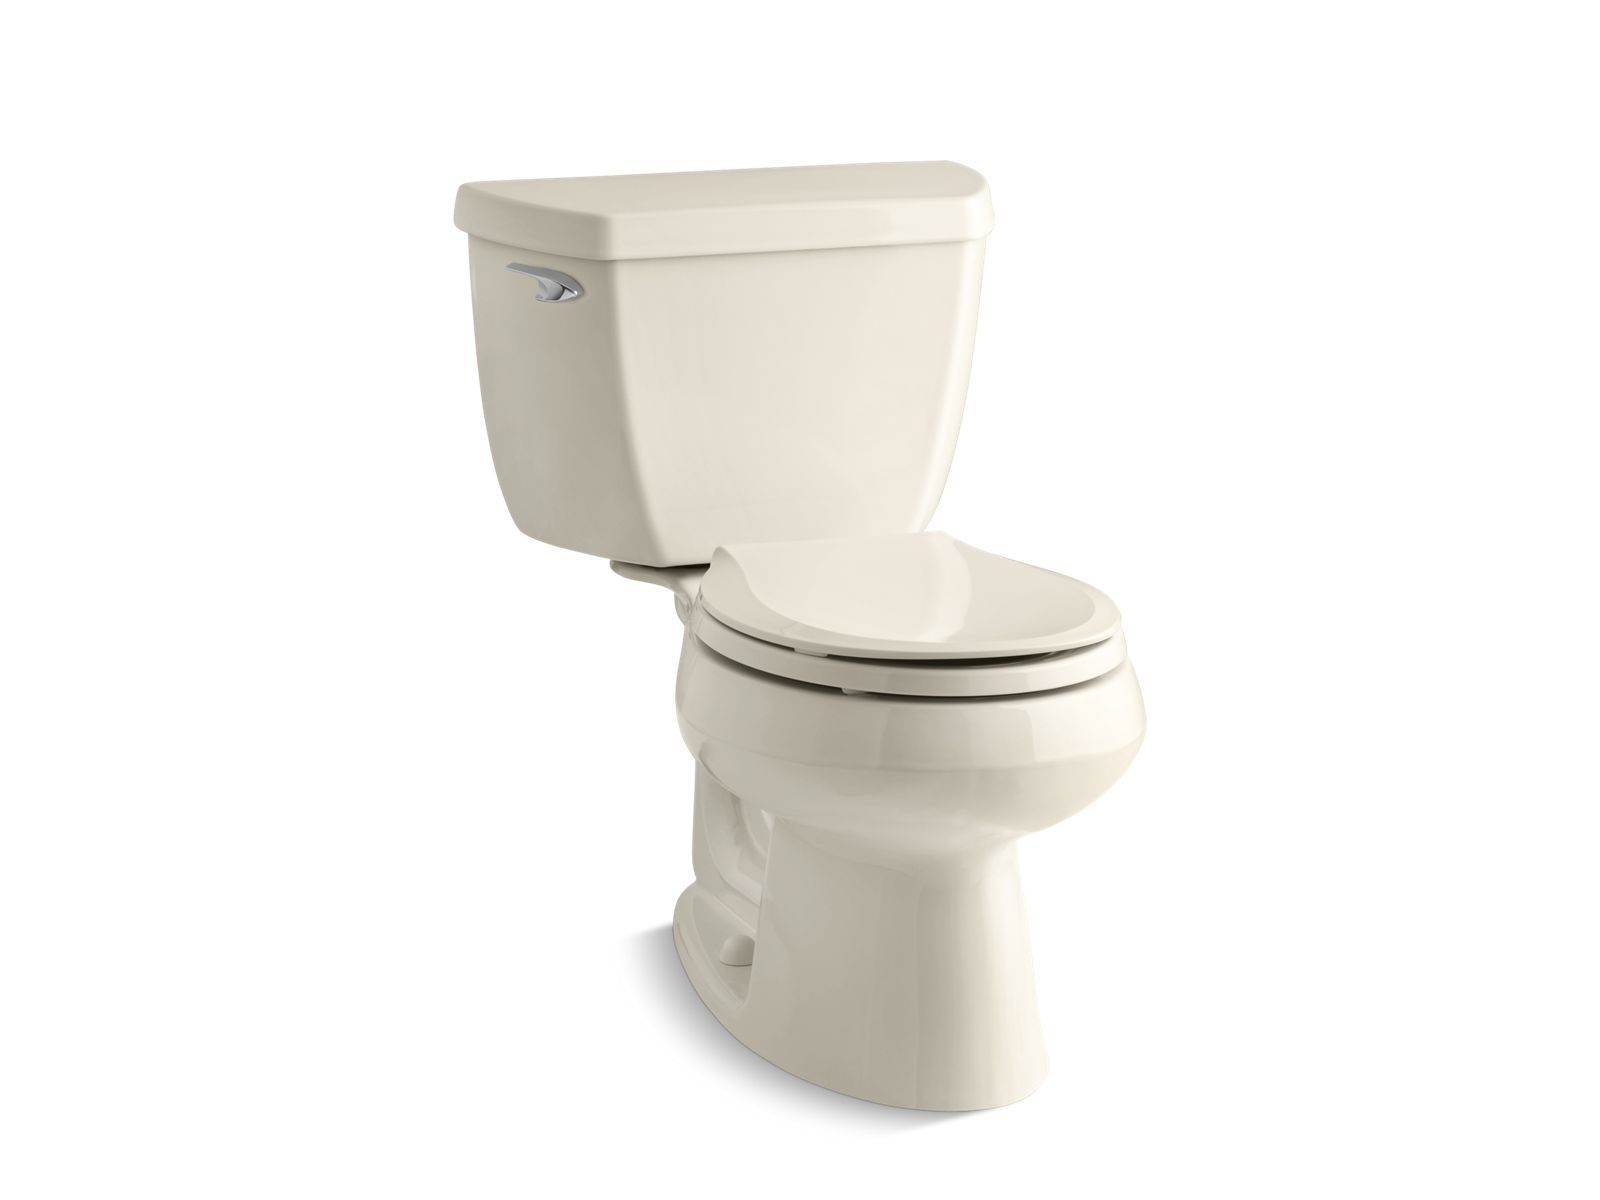 Wellworth Classic Two-Piece Round-Front 1.28 GPF Toilet with Class Five Flush Technology and Left-Hand Trip Lever